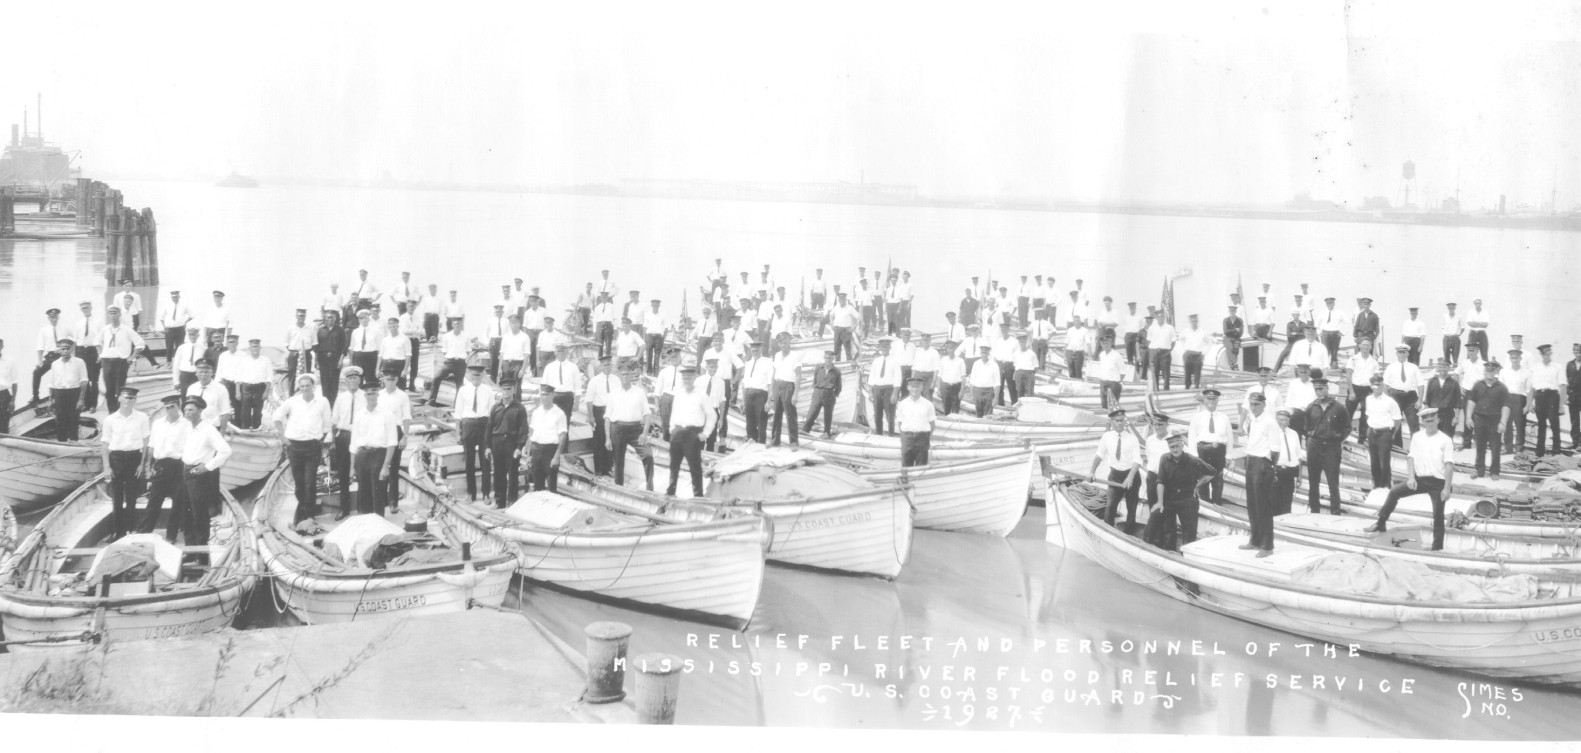 "The U.S. Coast Guard's ""Relief Fleet"" assembled to meet the emergency, 1927."